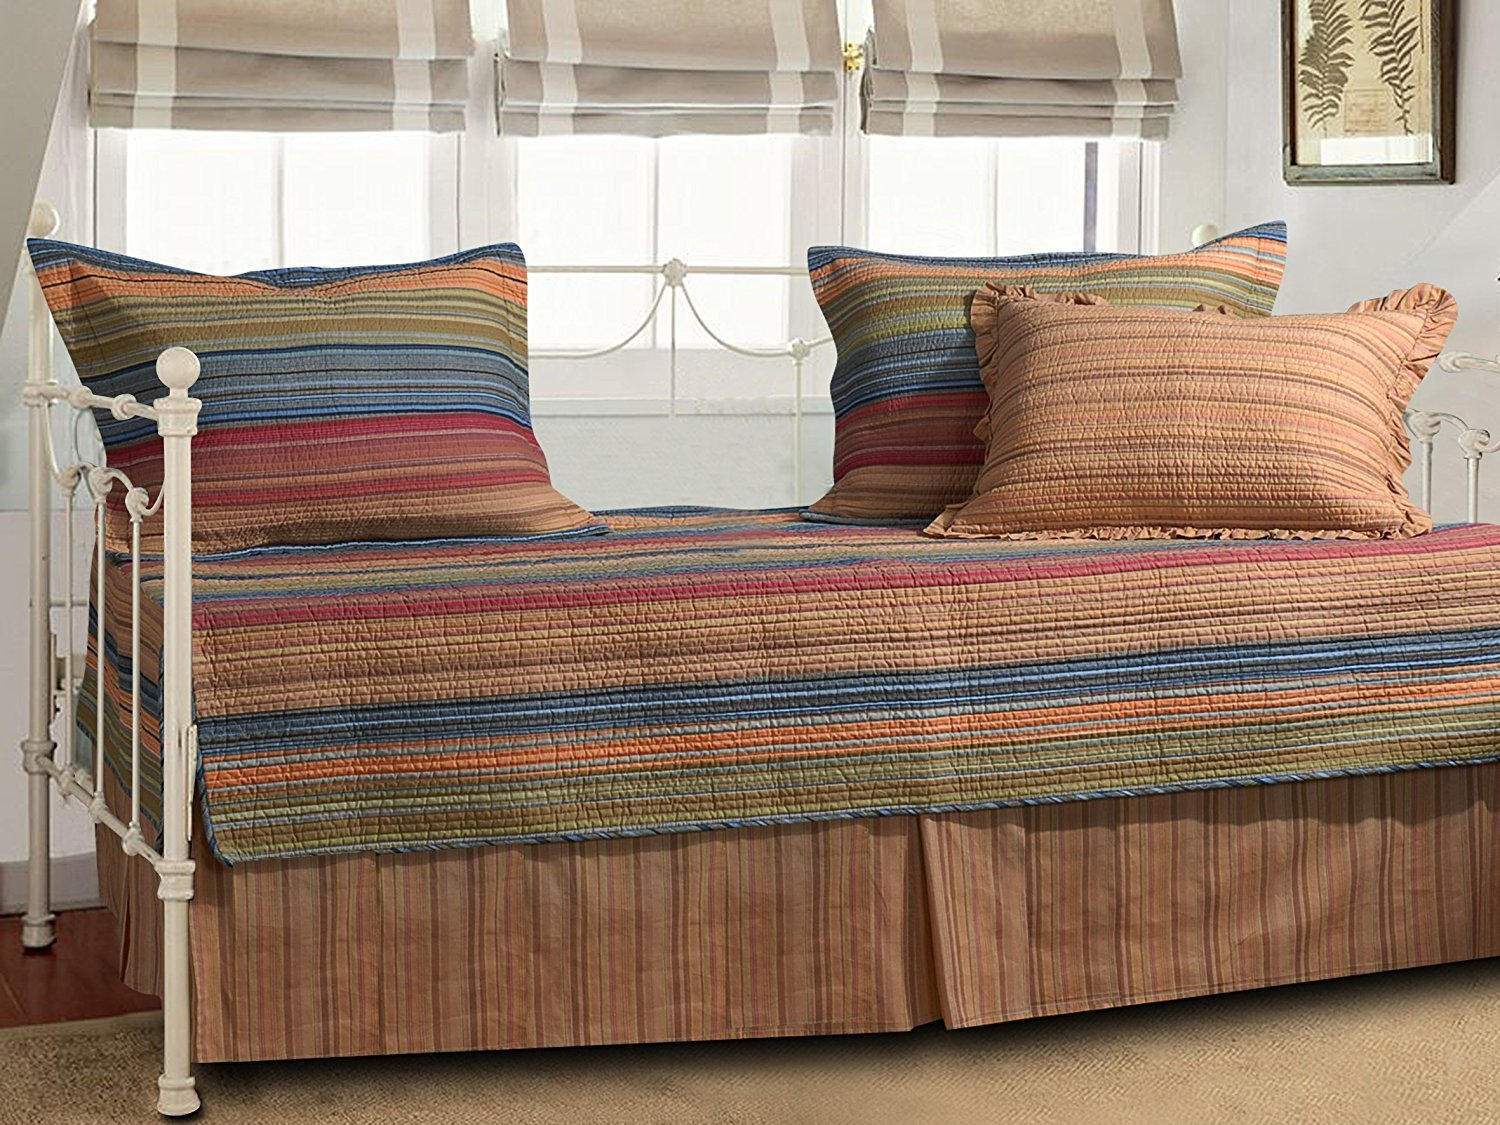 1. Greenland Home Katy Daybed Set